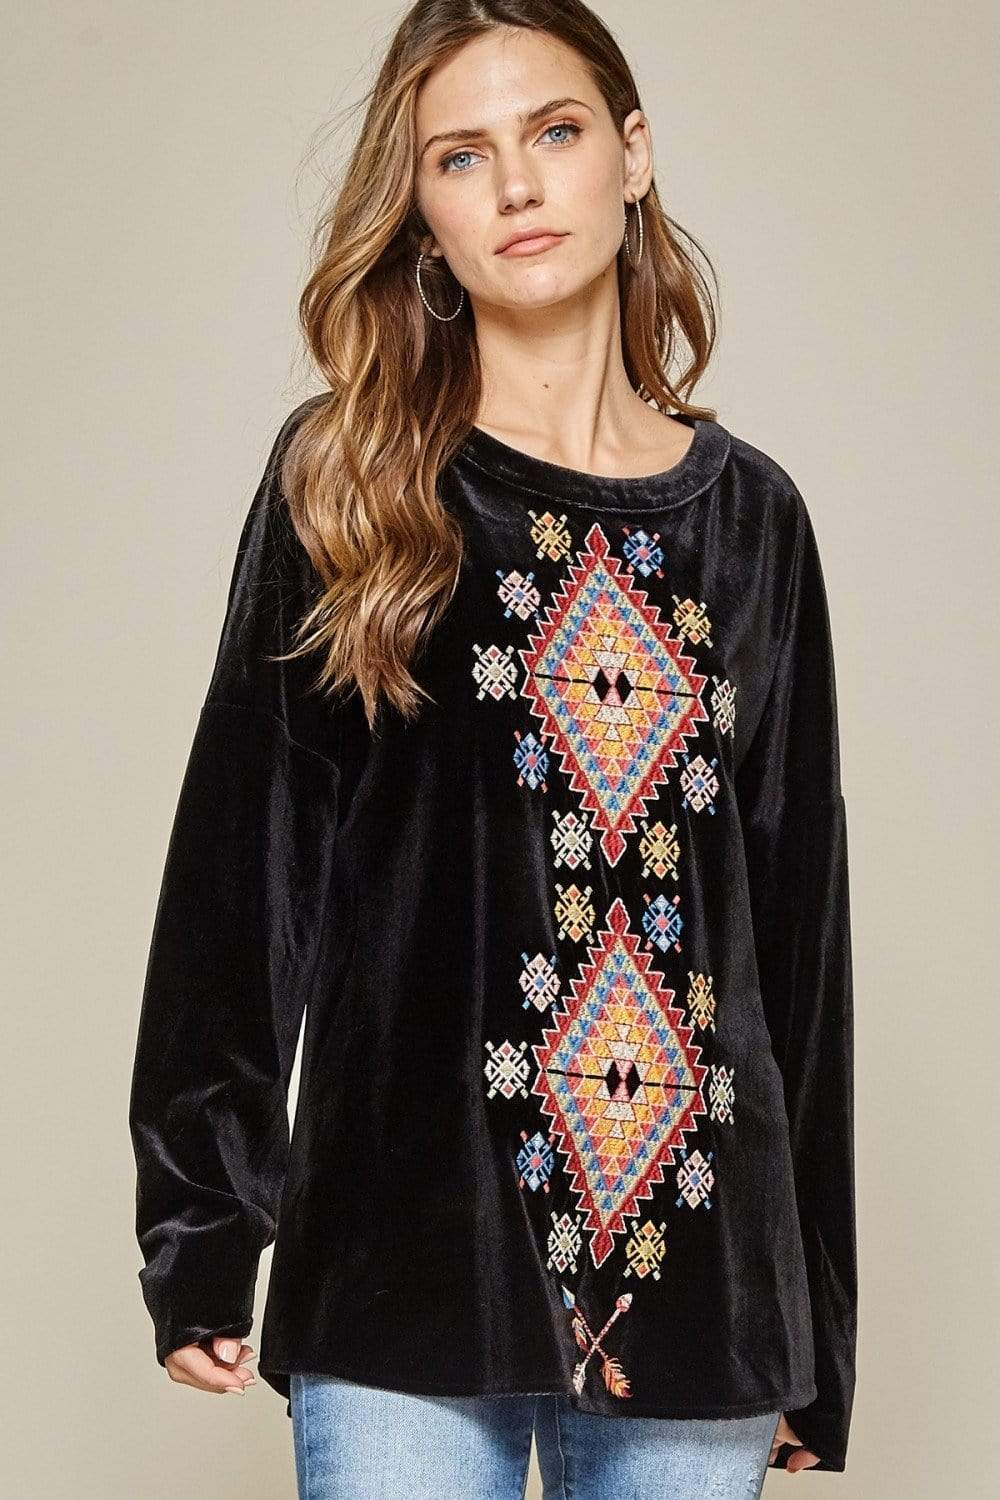 Andree by Unit Dressy RESTOCKED Velvet Top With Embroidery Design